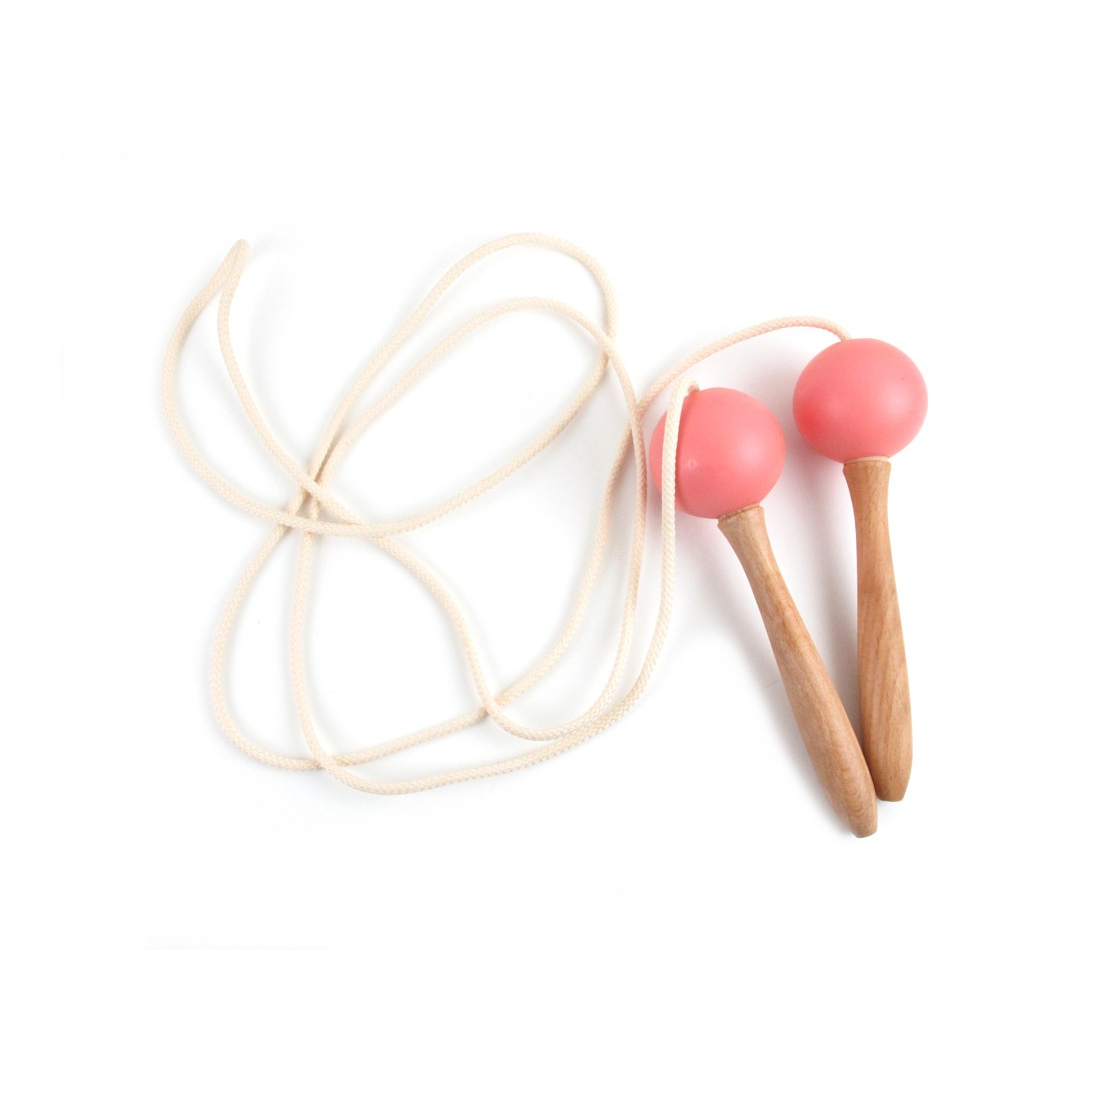 leo bella nobodinoz wooden jumping rope indian pink. Black Bedroom Furniture Sets. Home Design Ideas